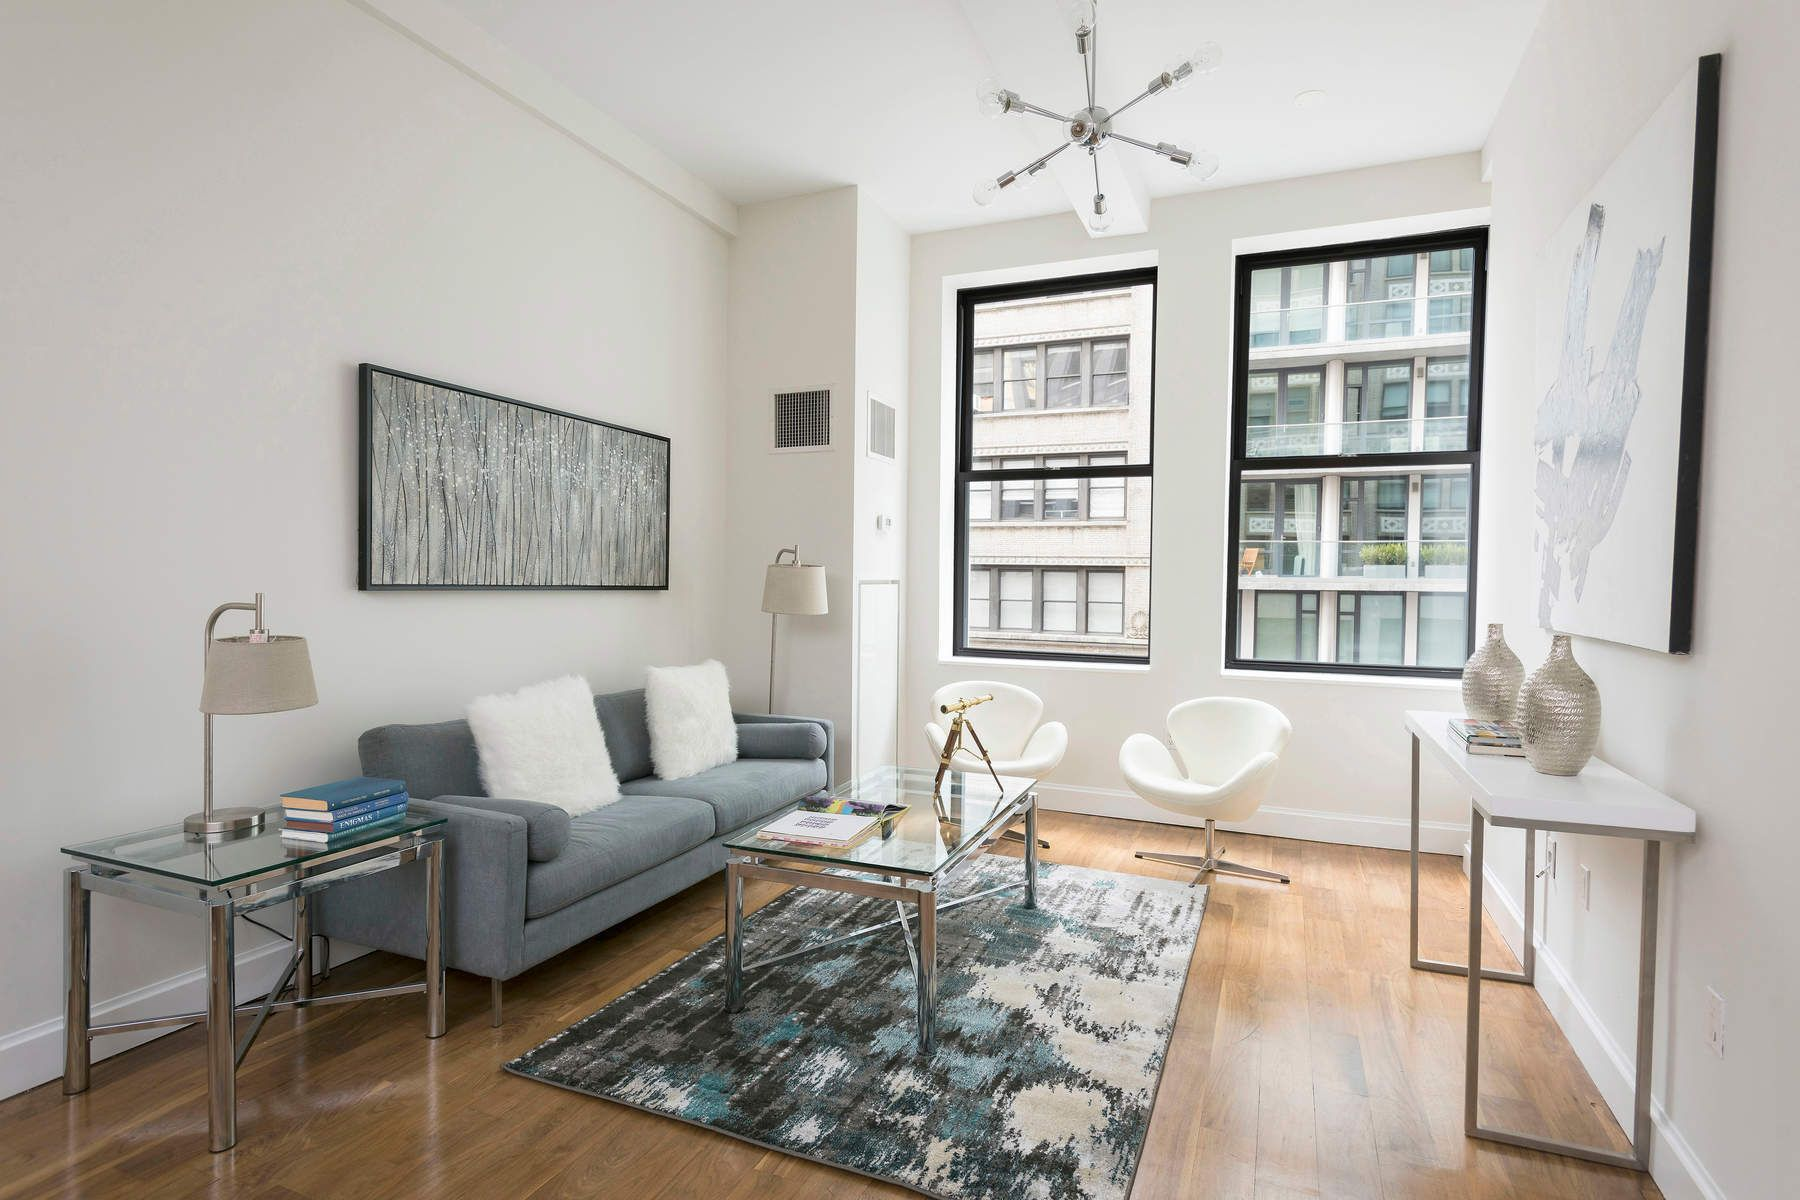 Condominium for Sale at 140 West 22nd Street, Apt. 3A 140 West 22nd Street Apt 3A New York, New York 10011 United States